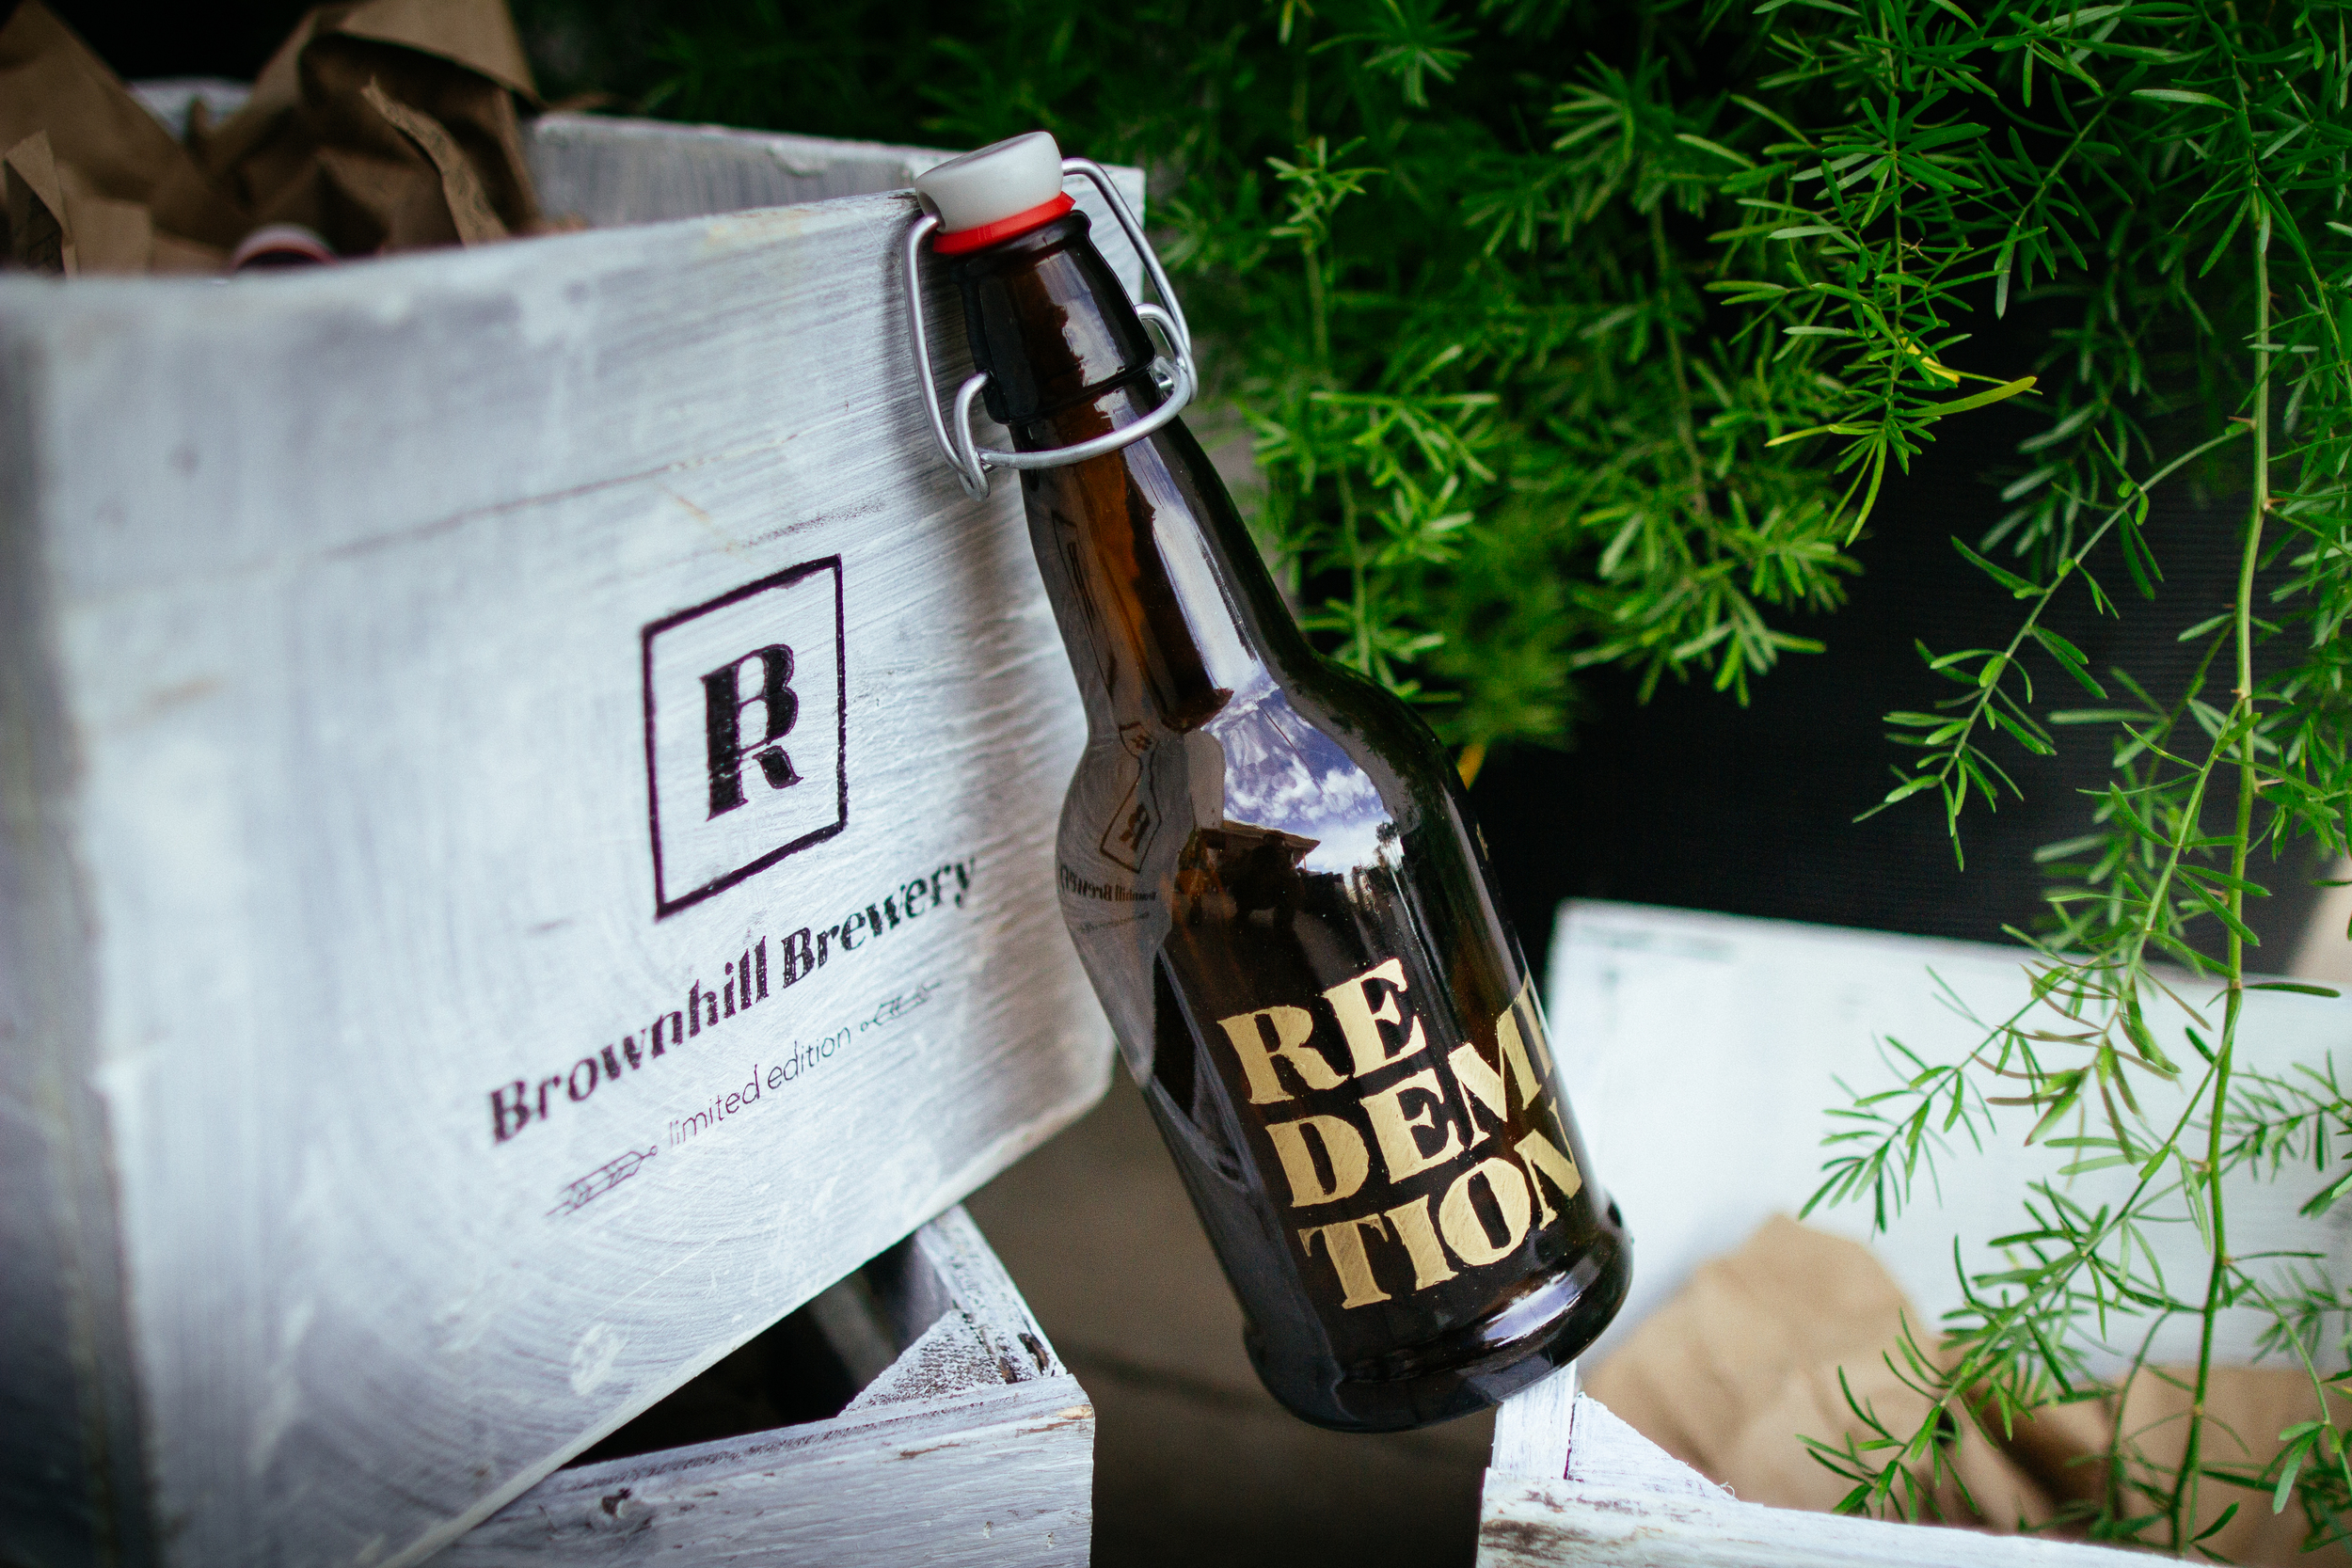 brownhill-brewery-limited-edition-7.jpg